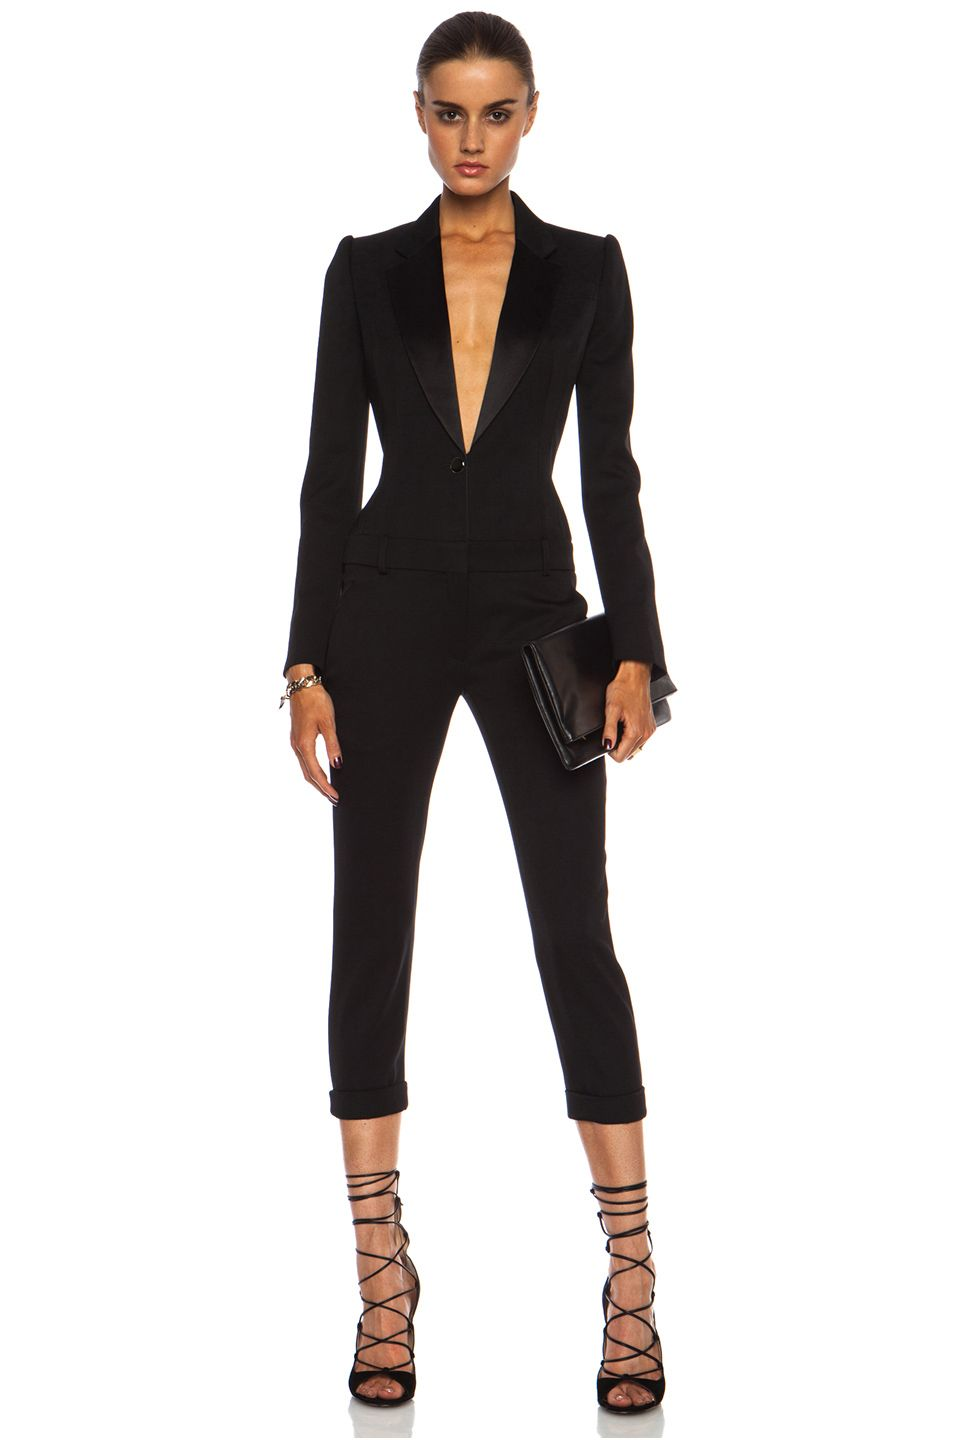 8a0e461f691 Alexander McQueen Cigarette Tuxedo Virgin Wool Jumpsuit in Black ...